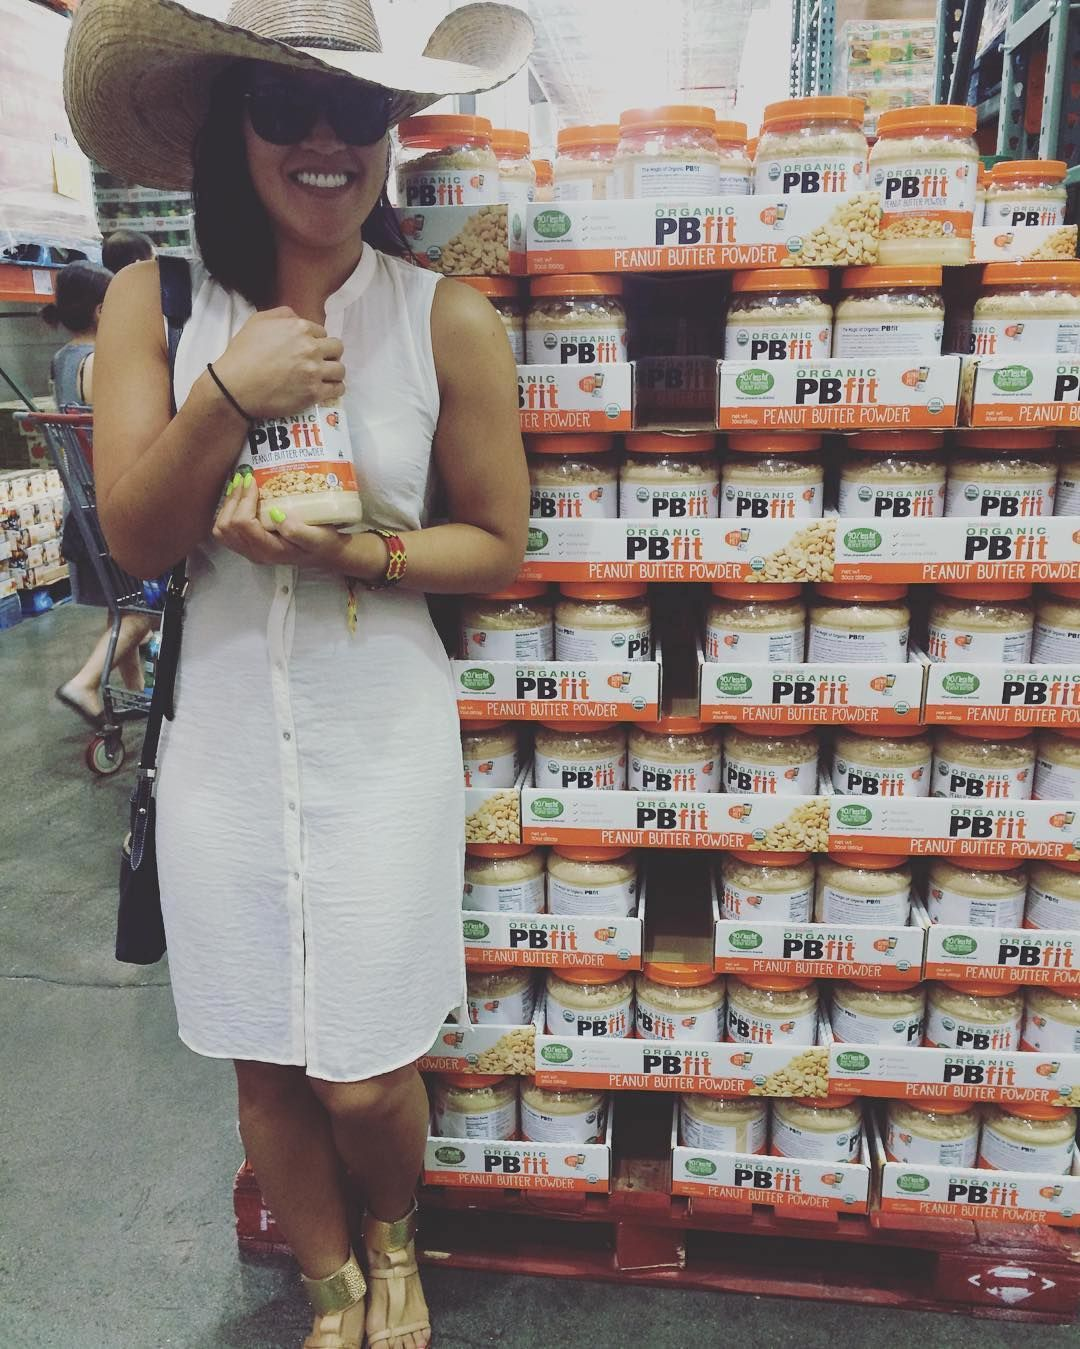 de487c7f42b Nothing better than sundresses shades and a awesome #Costco find! #PBfit